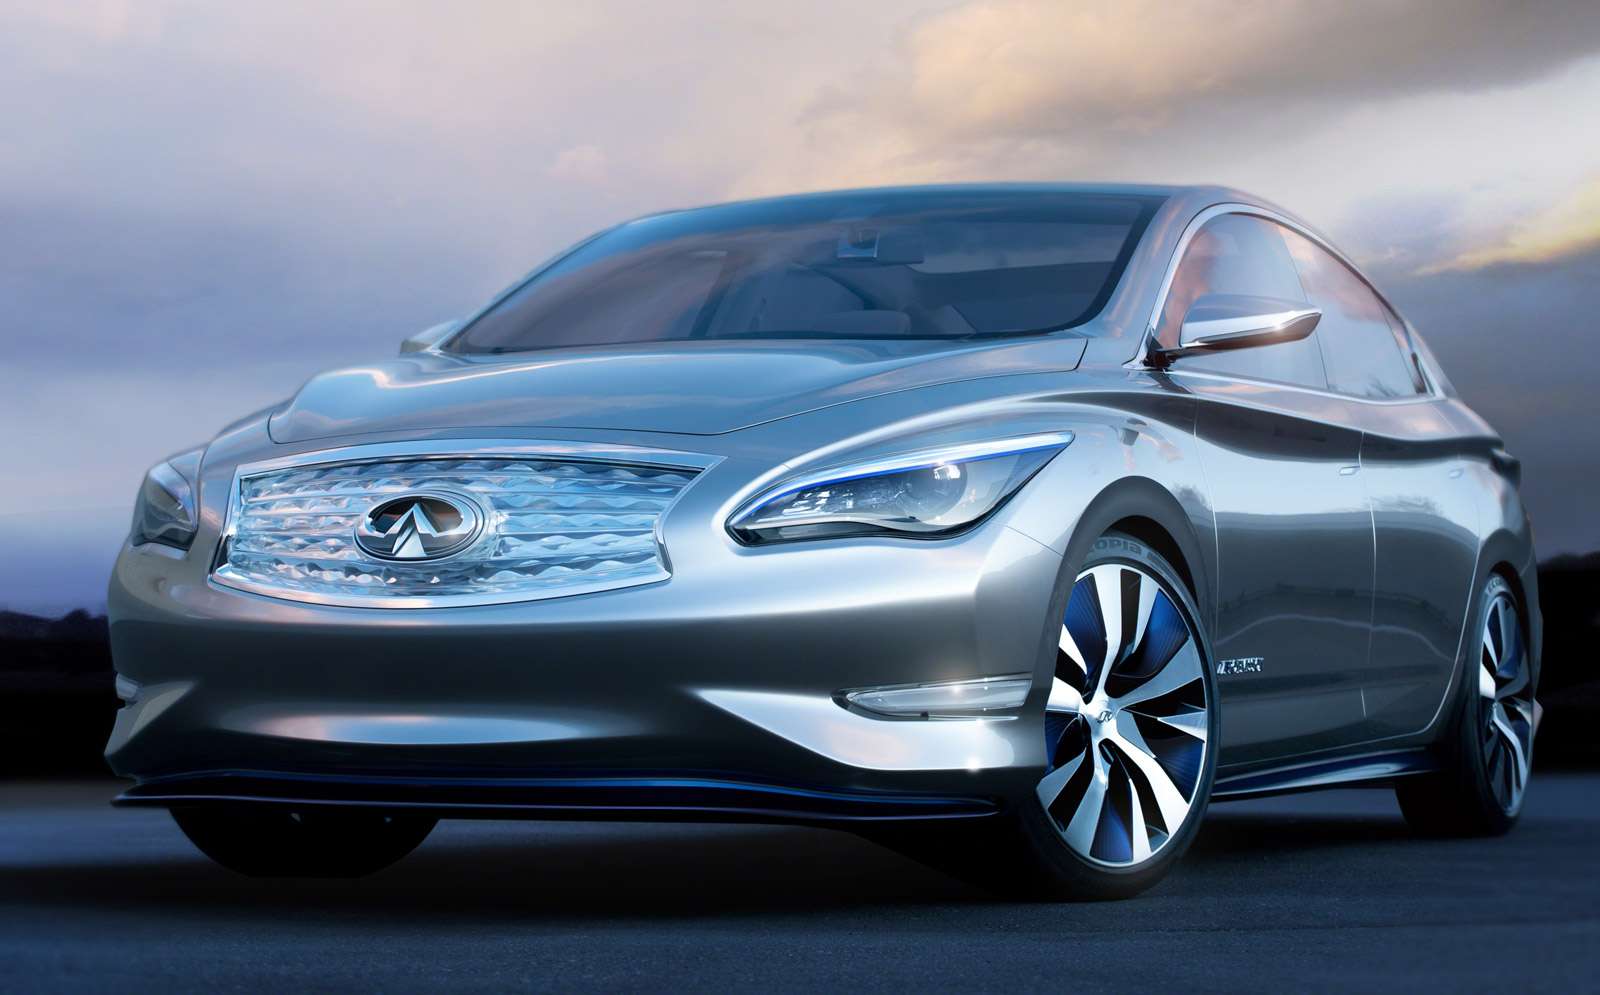 Infiniti Le Electric Luxury Sedan To Be Built After All With Higher Range